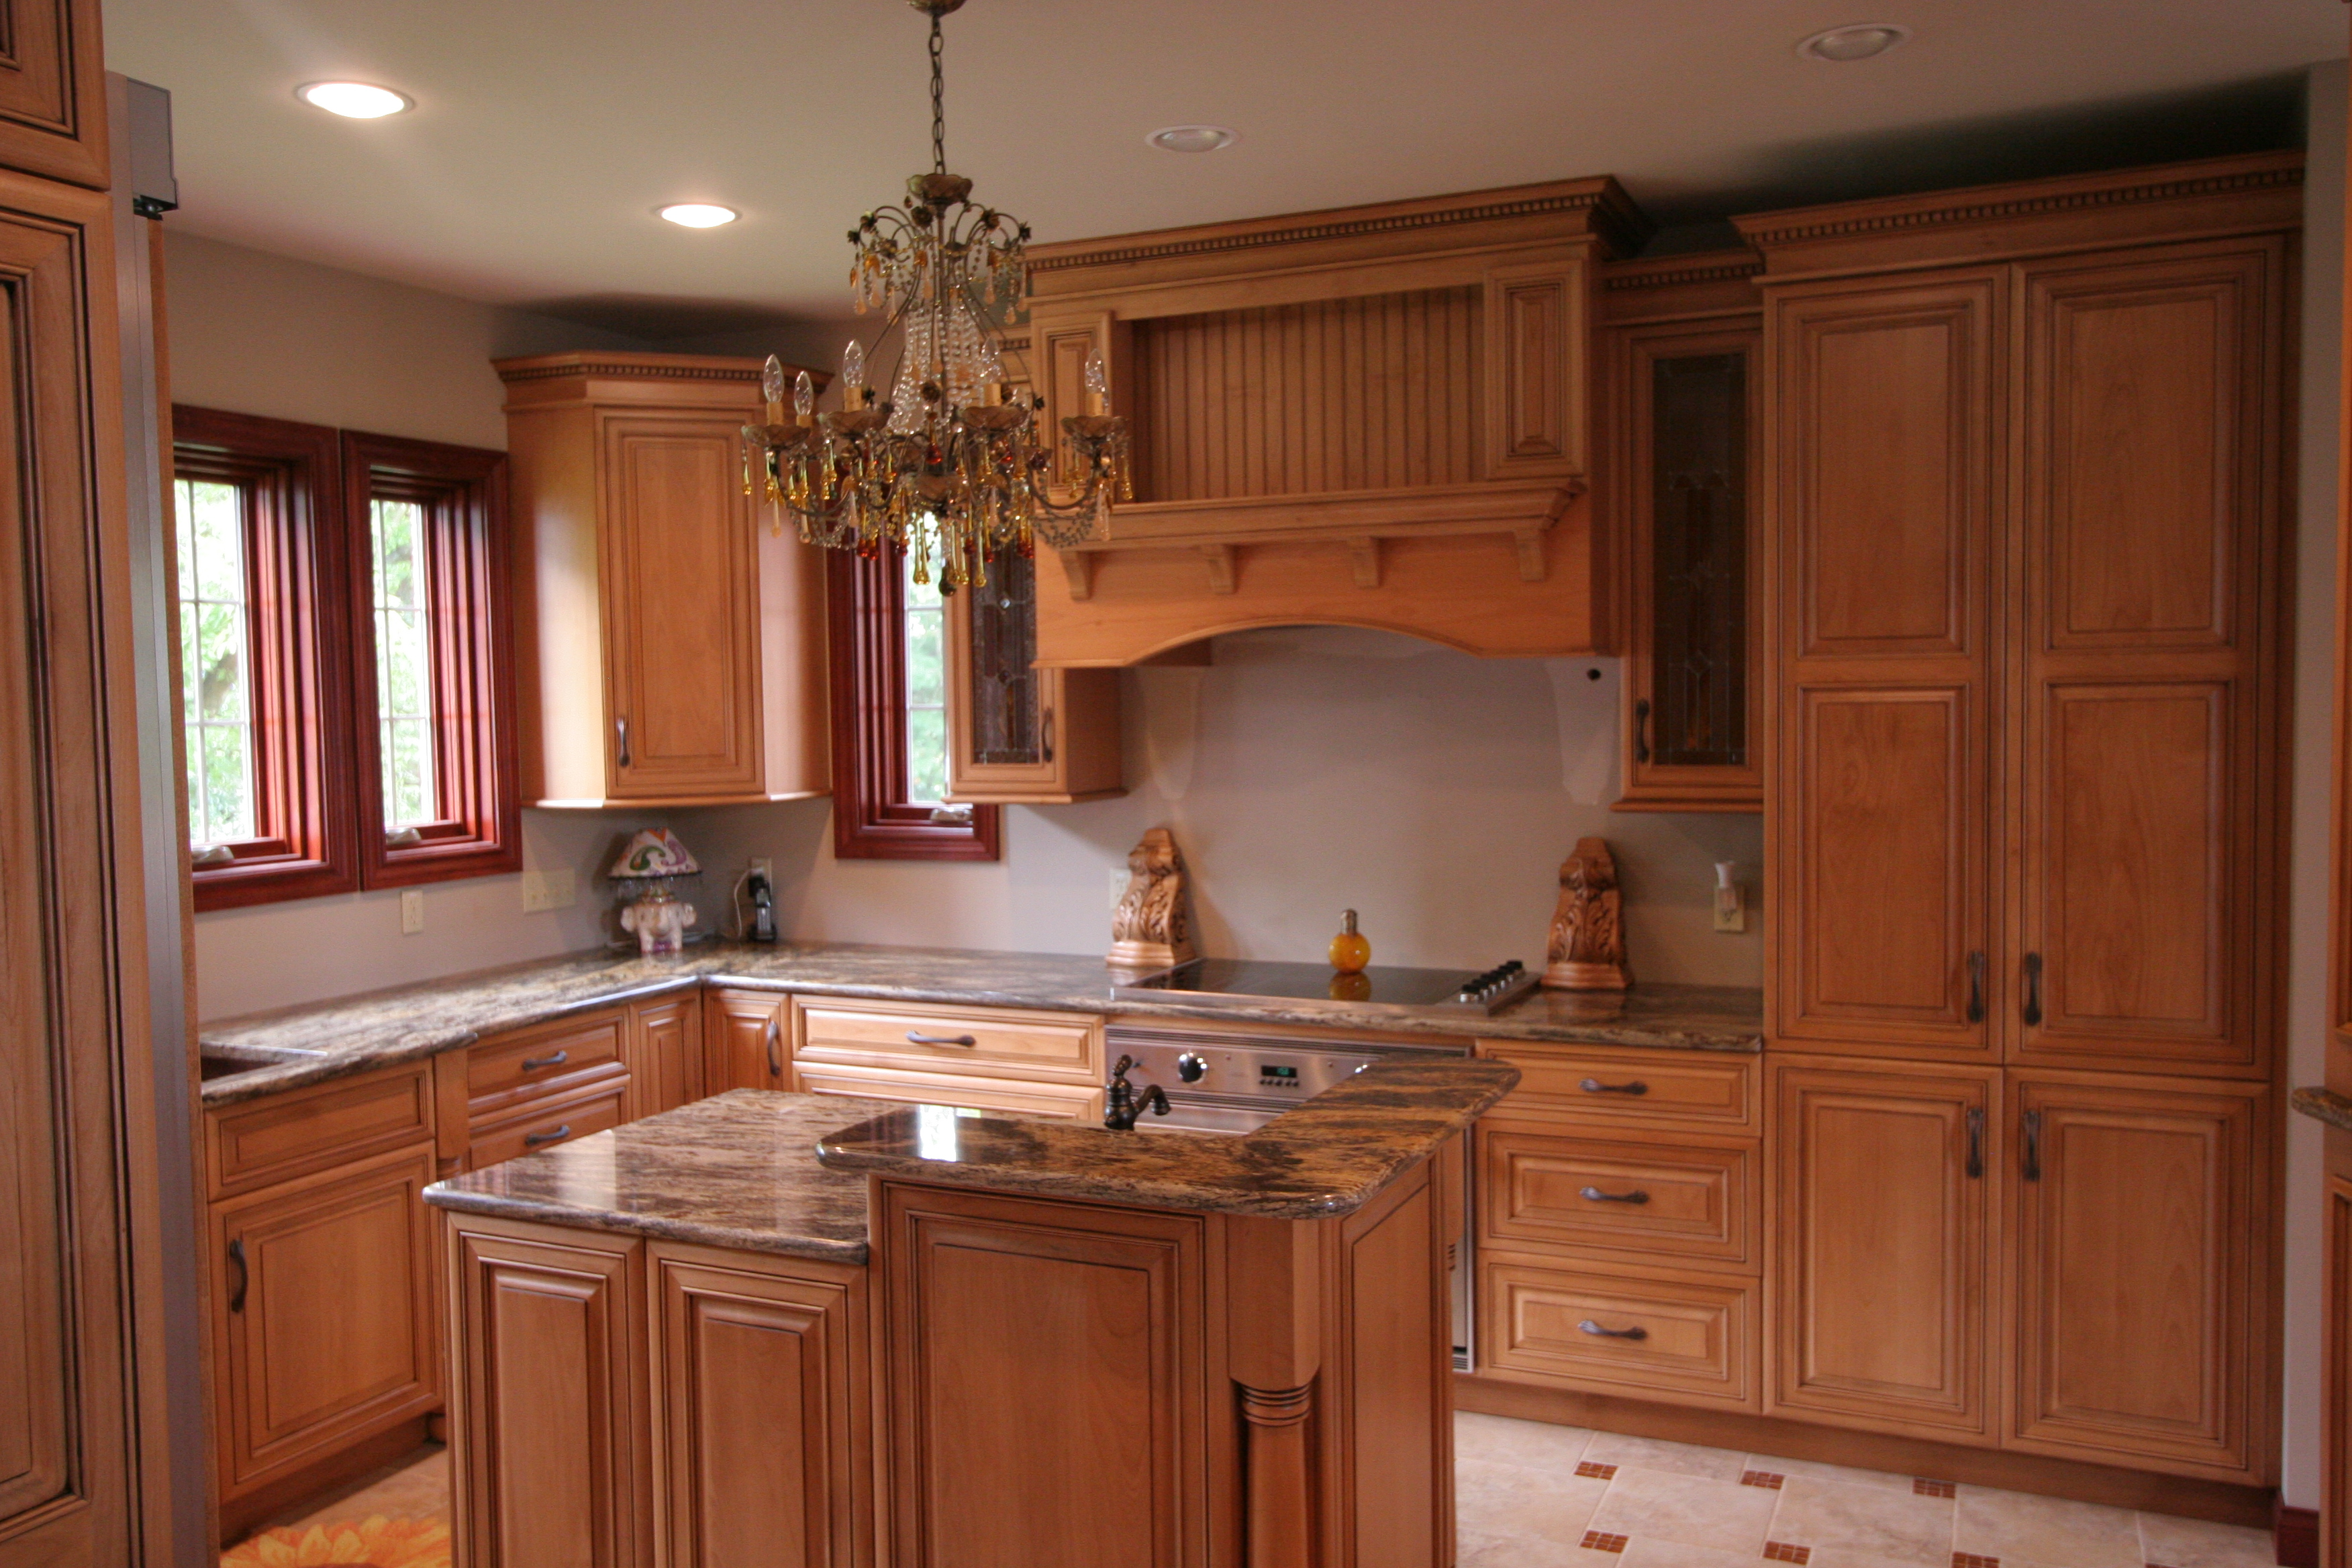 kitchen cabinets layout ideas photo - 5